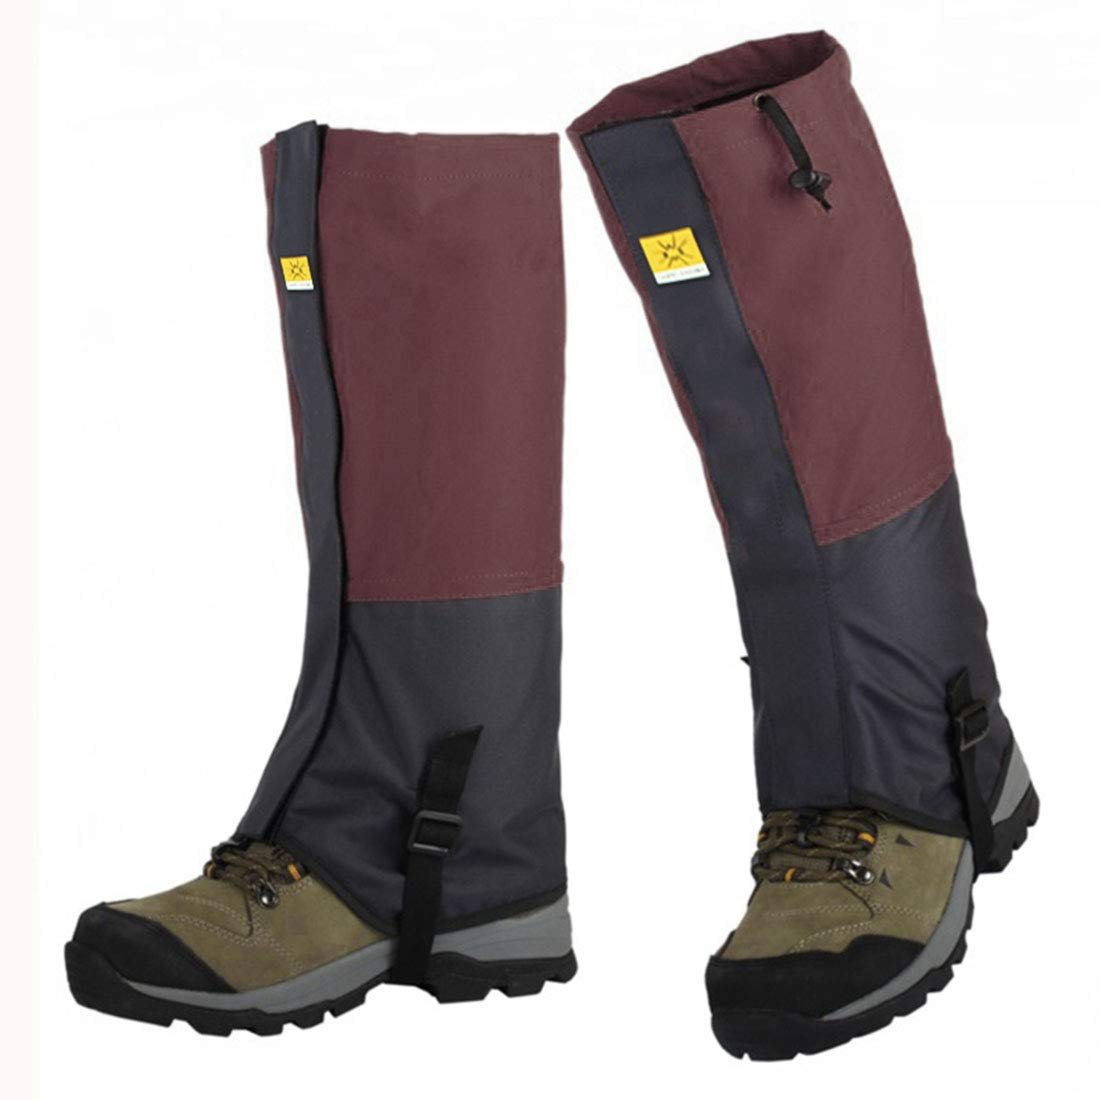 Freahap Leg Gaiters Windproof Snow Gaiters Nylon Boot Gaiters Mudproof Shoes Covers for Hiking Backpacking Cycling